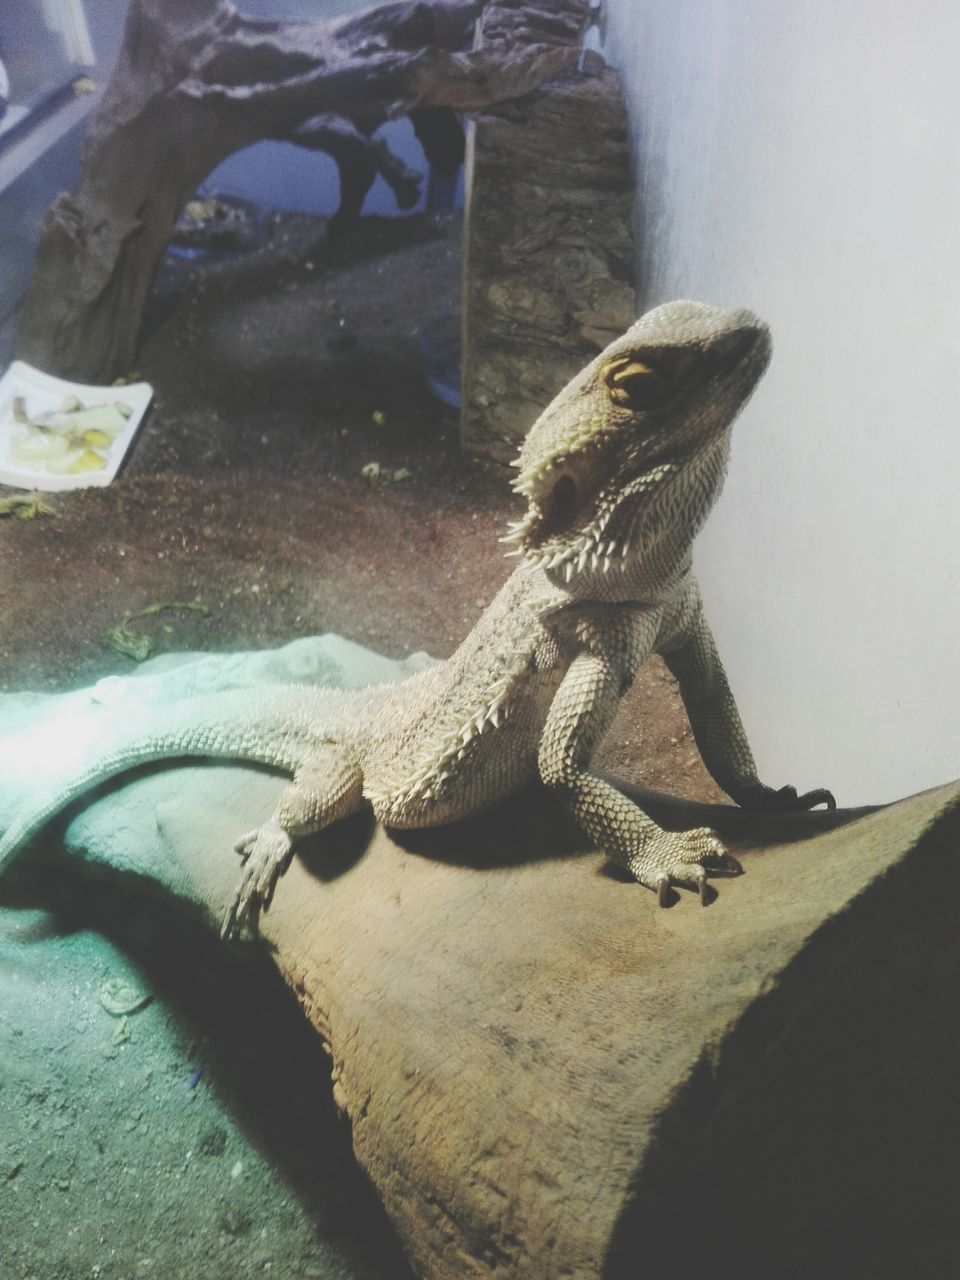 reptile, animal themes, one animal, animals in the wild, lizard, bearded dragon, animal wildlife, no people, day, nature, close-up, indoors, iguana